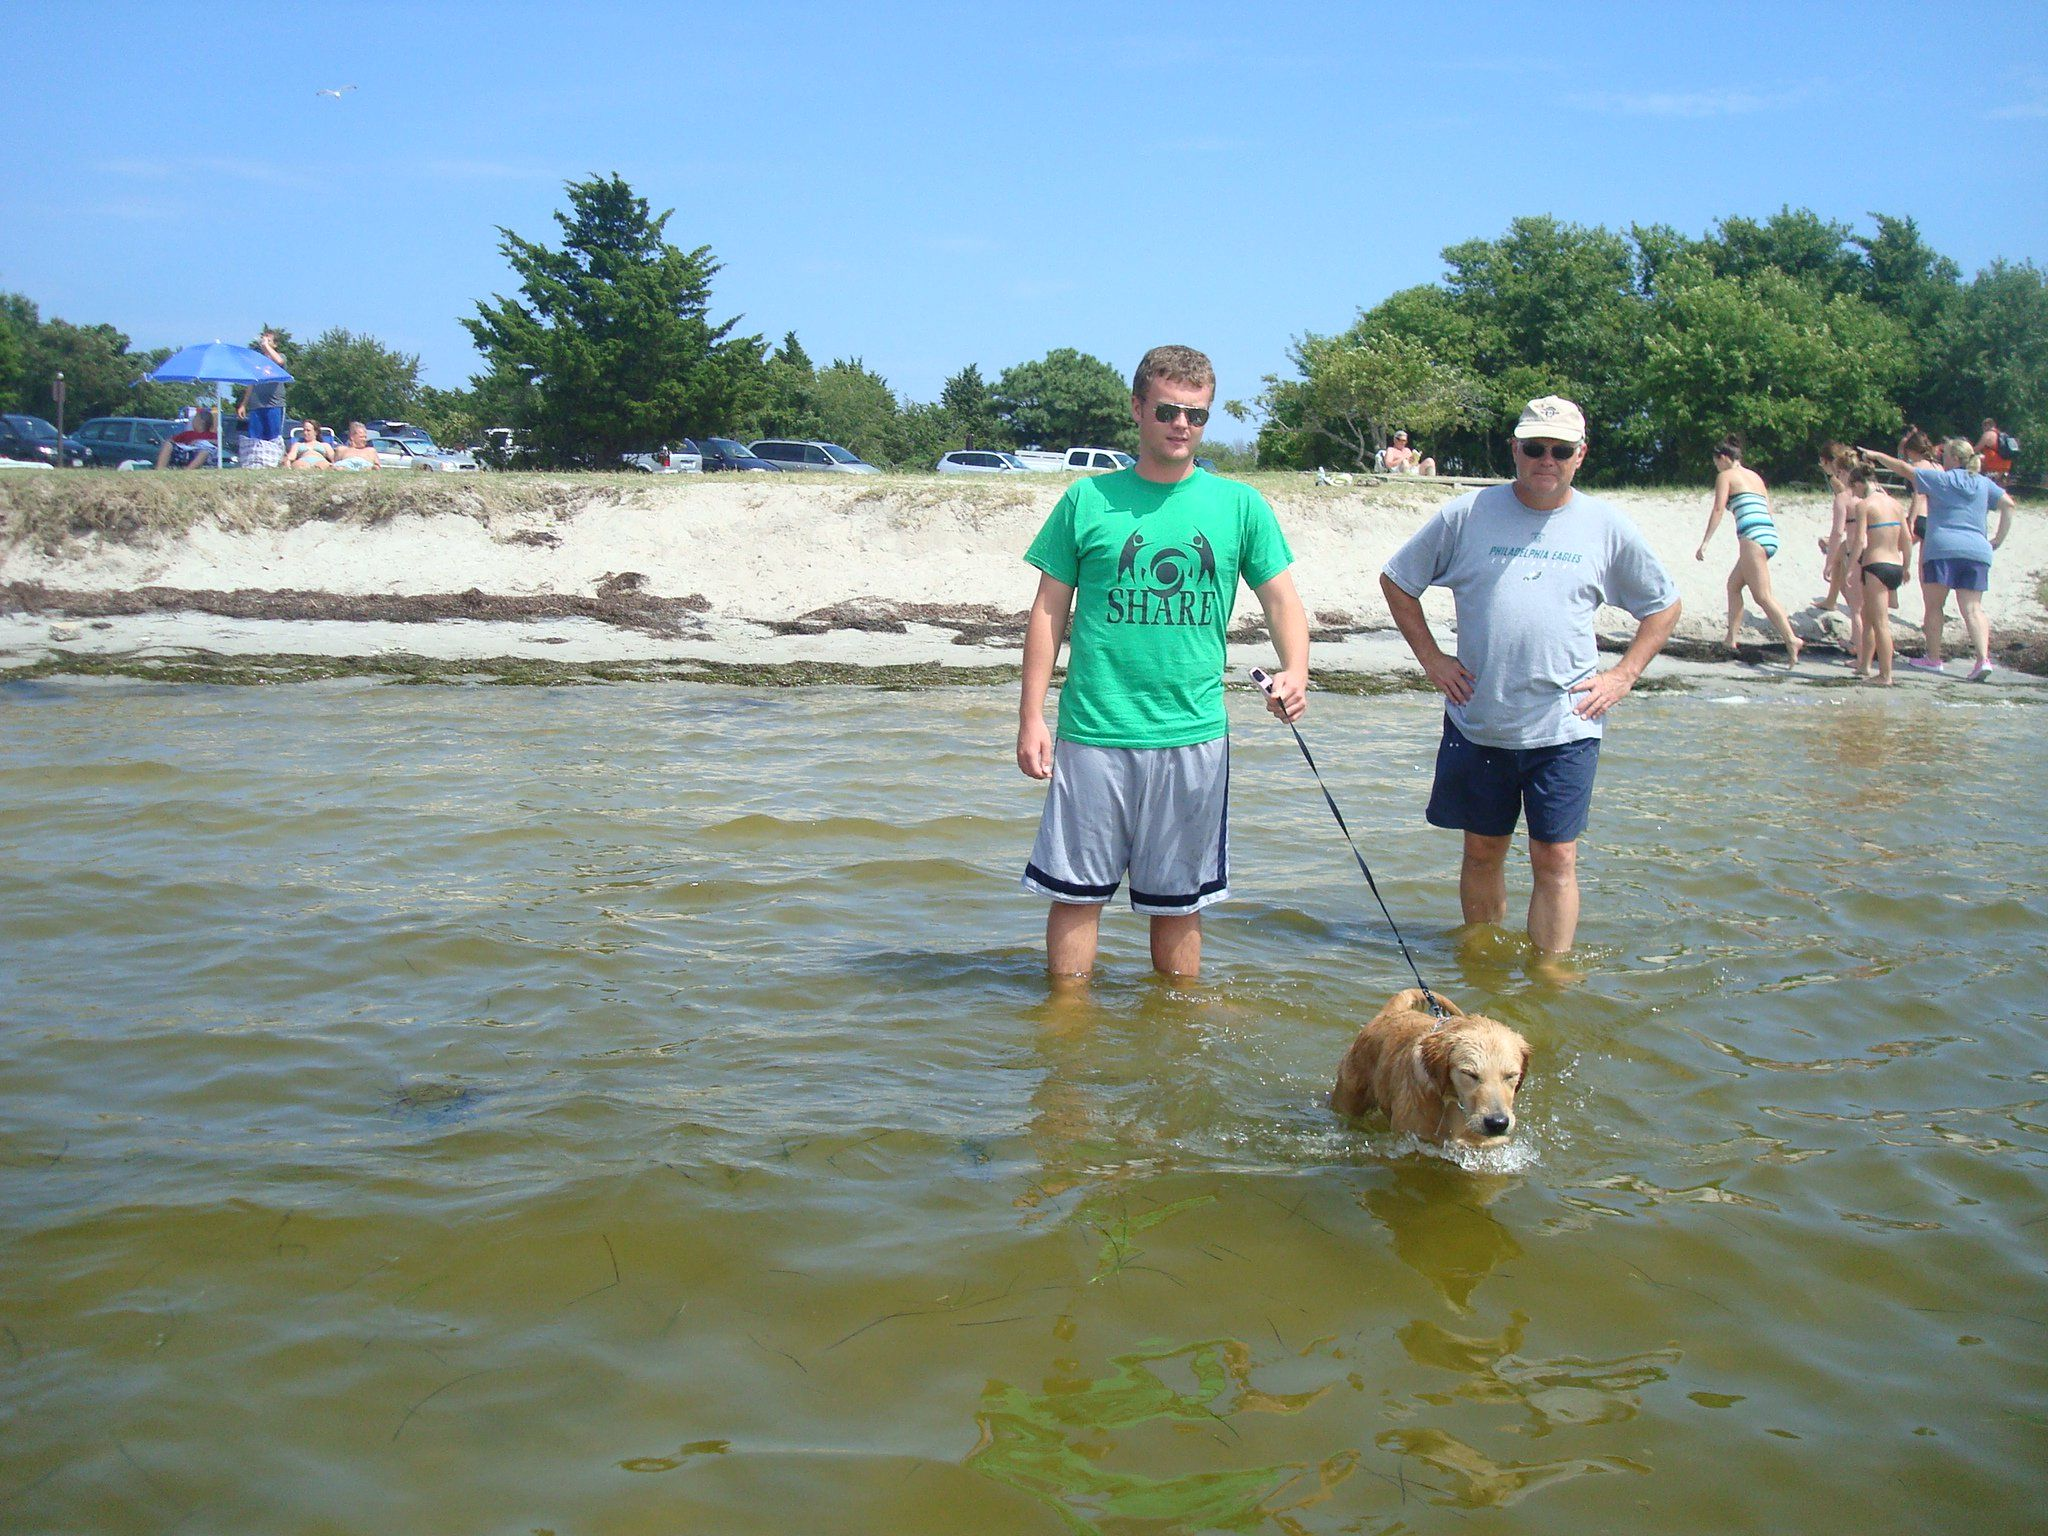 Dogs are allowed on the beach along the Maryland portion